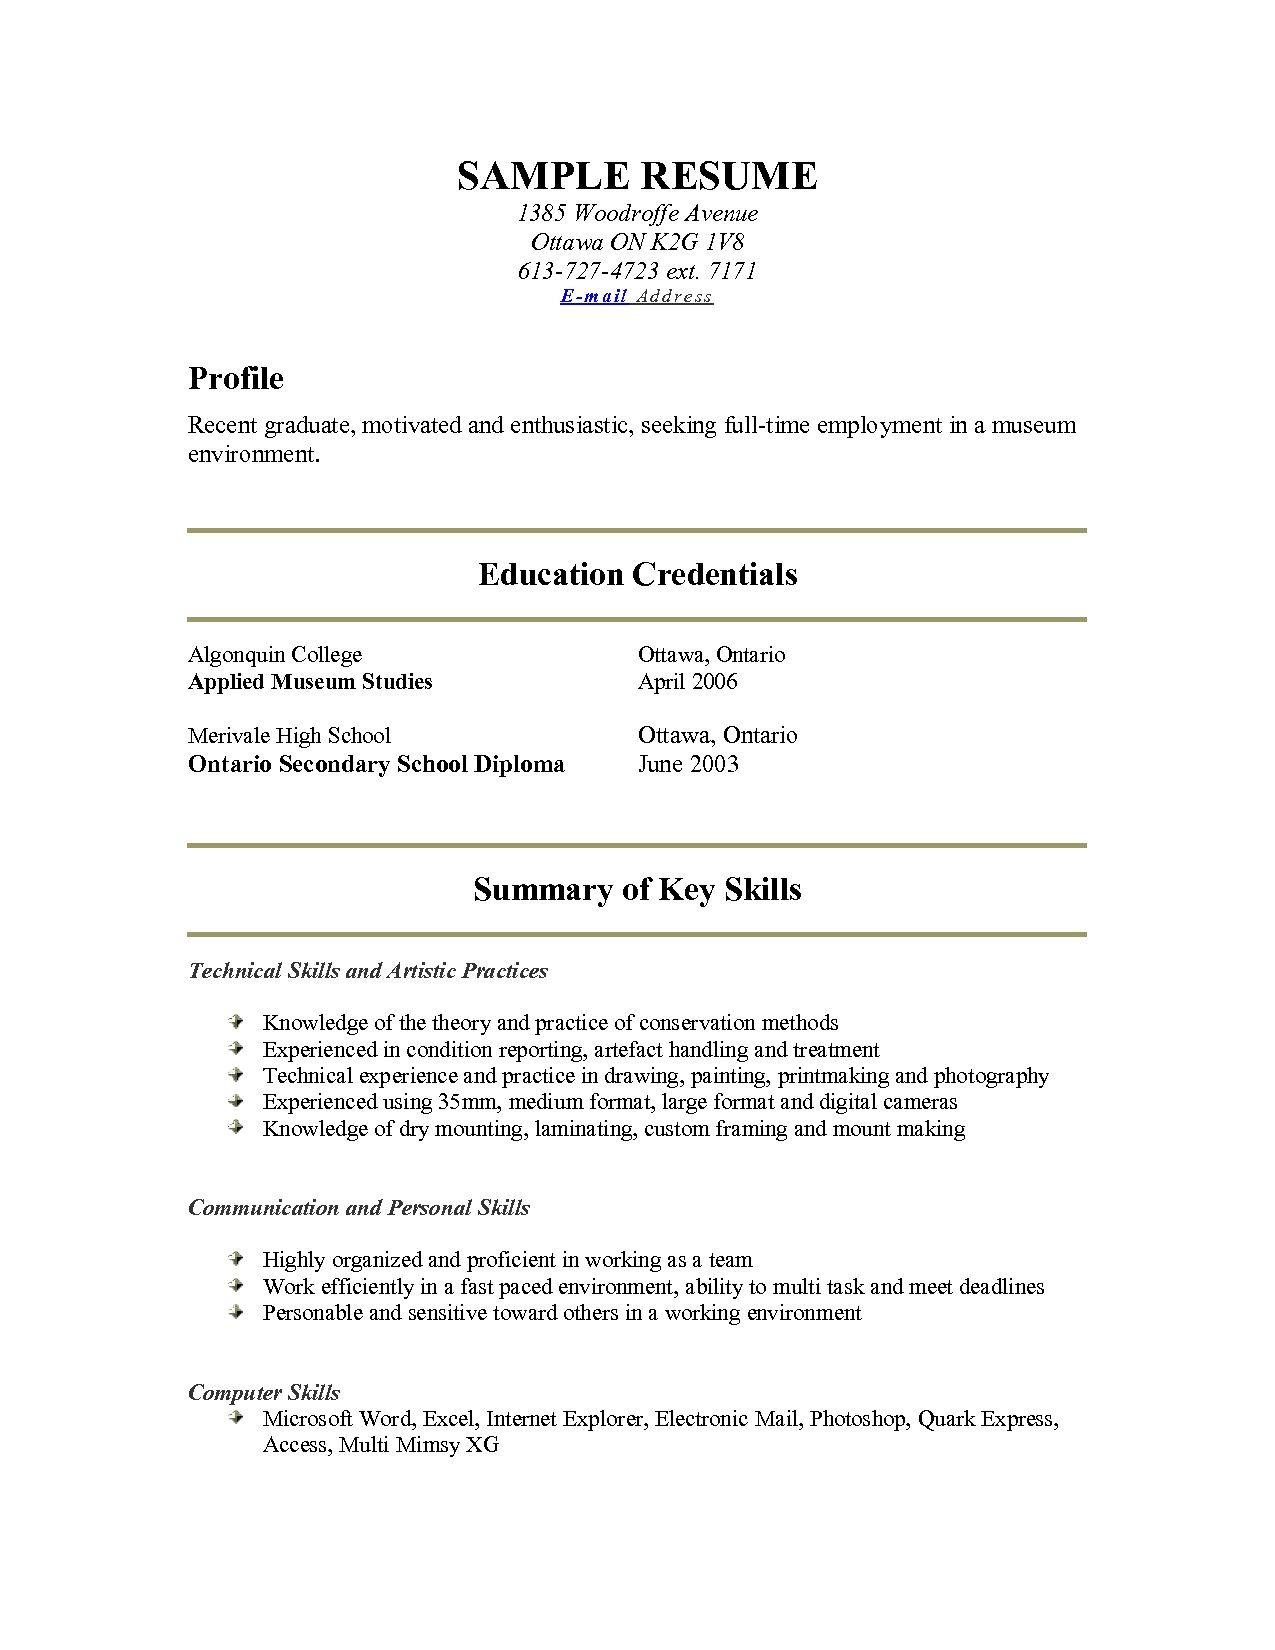 Sample Resume For Freshers Beautiful 32 Resume Templates For